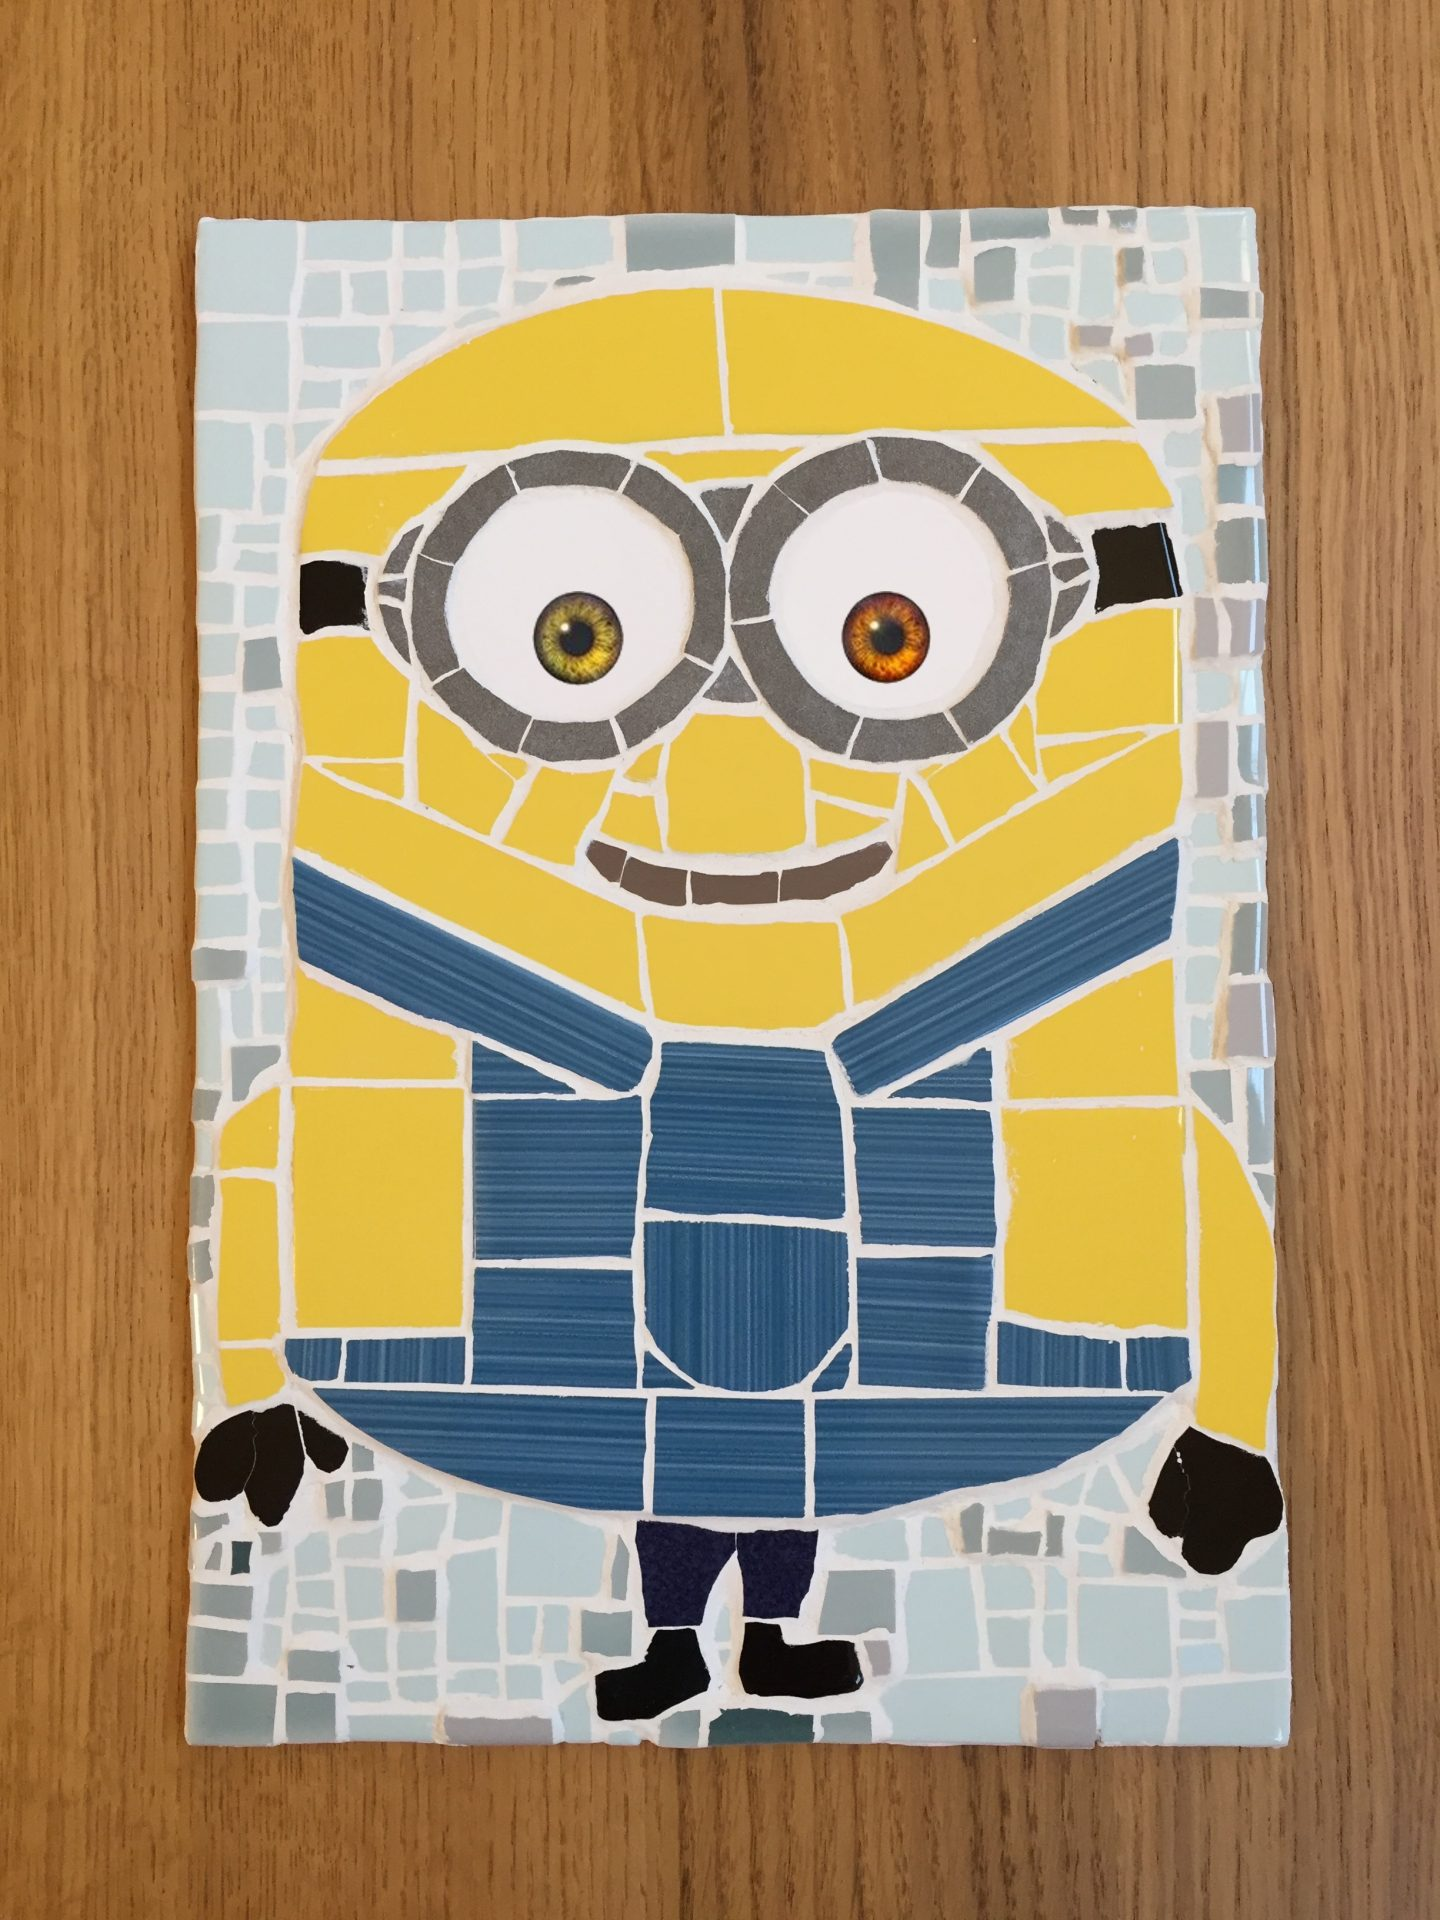 Bob The Minion Mosaic Wild Geckos Mosaics Designs